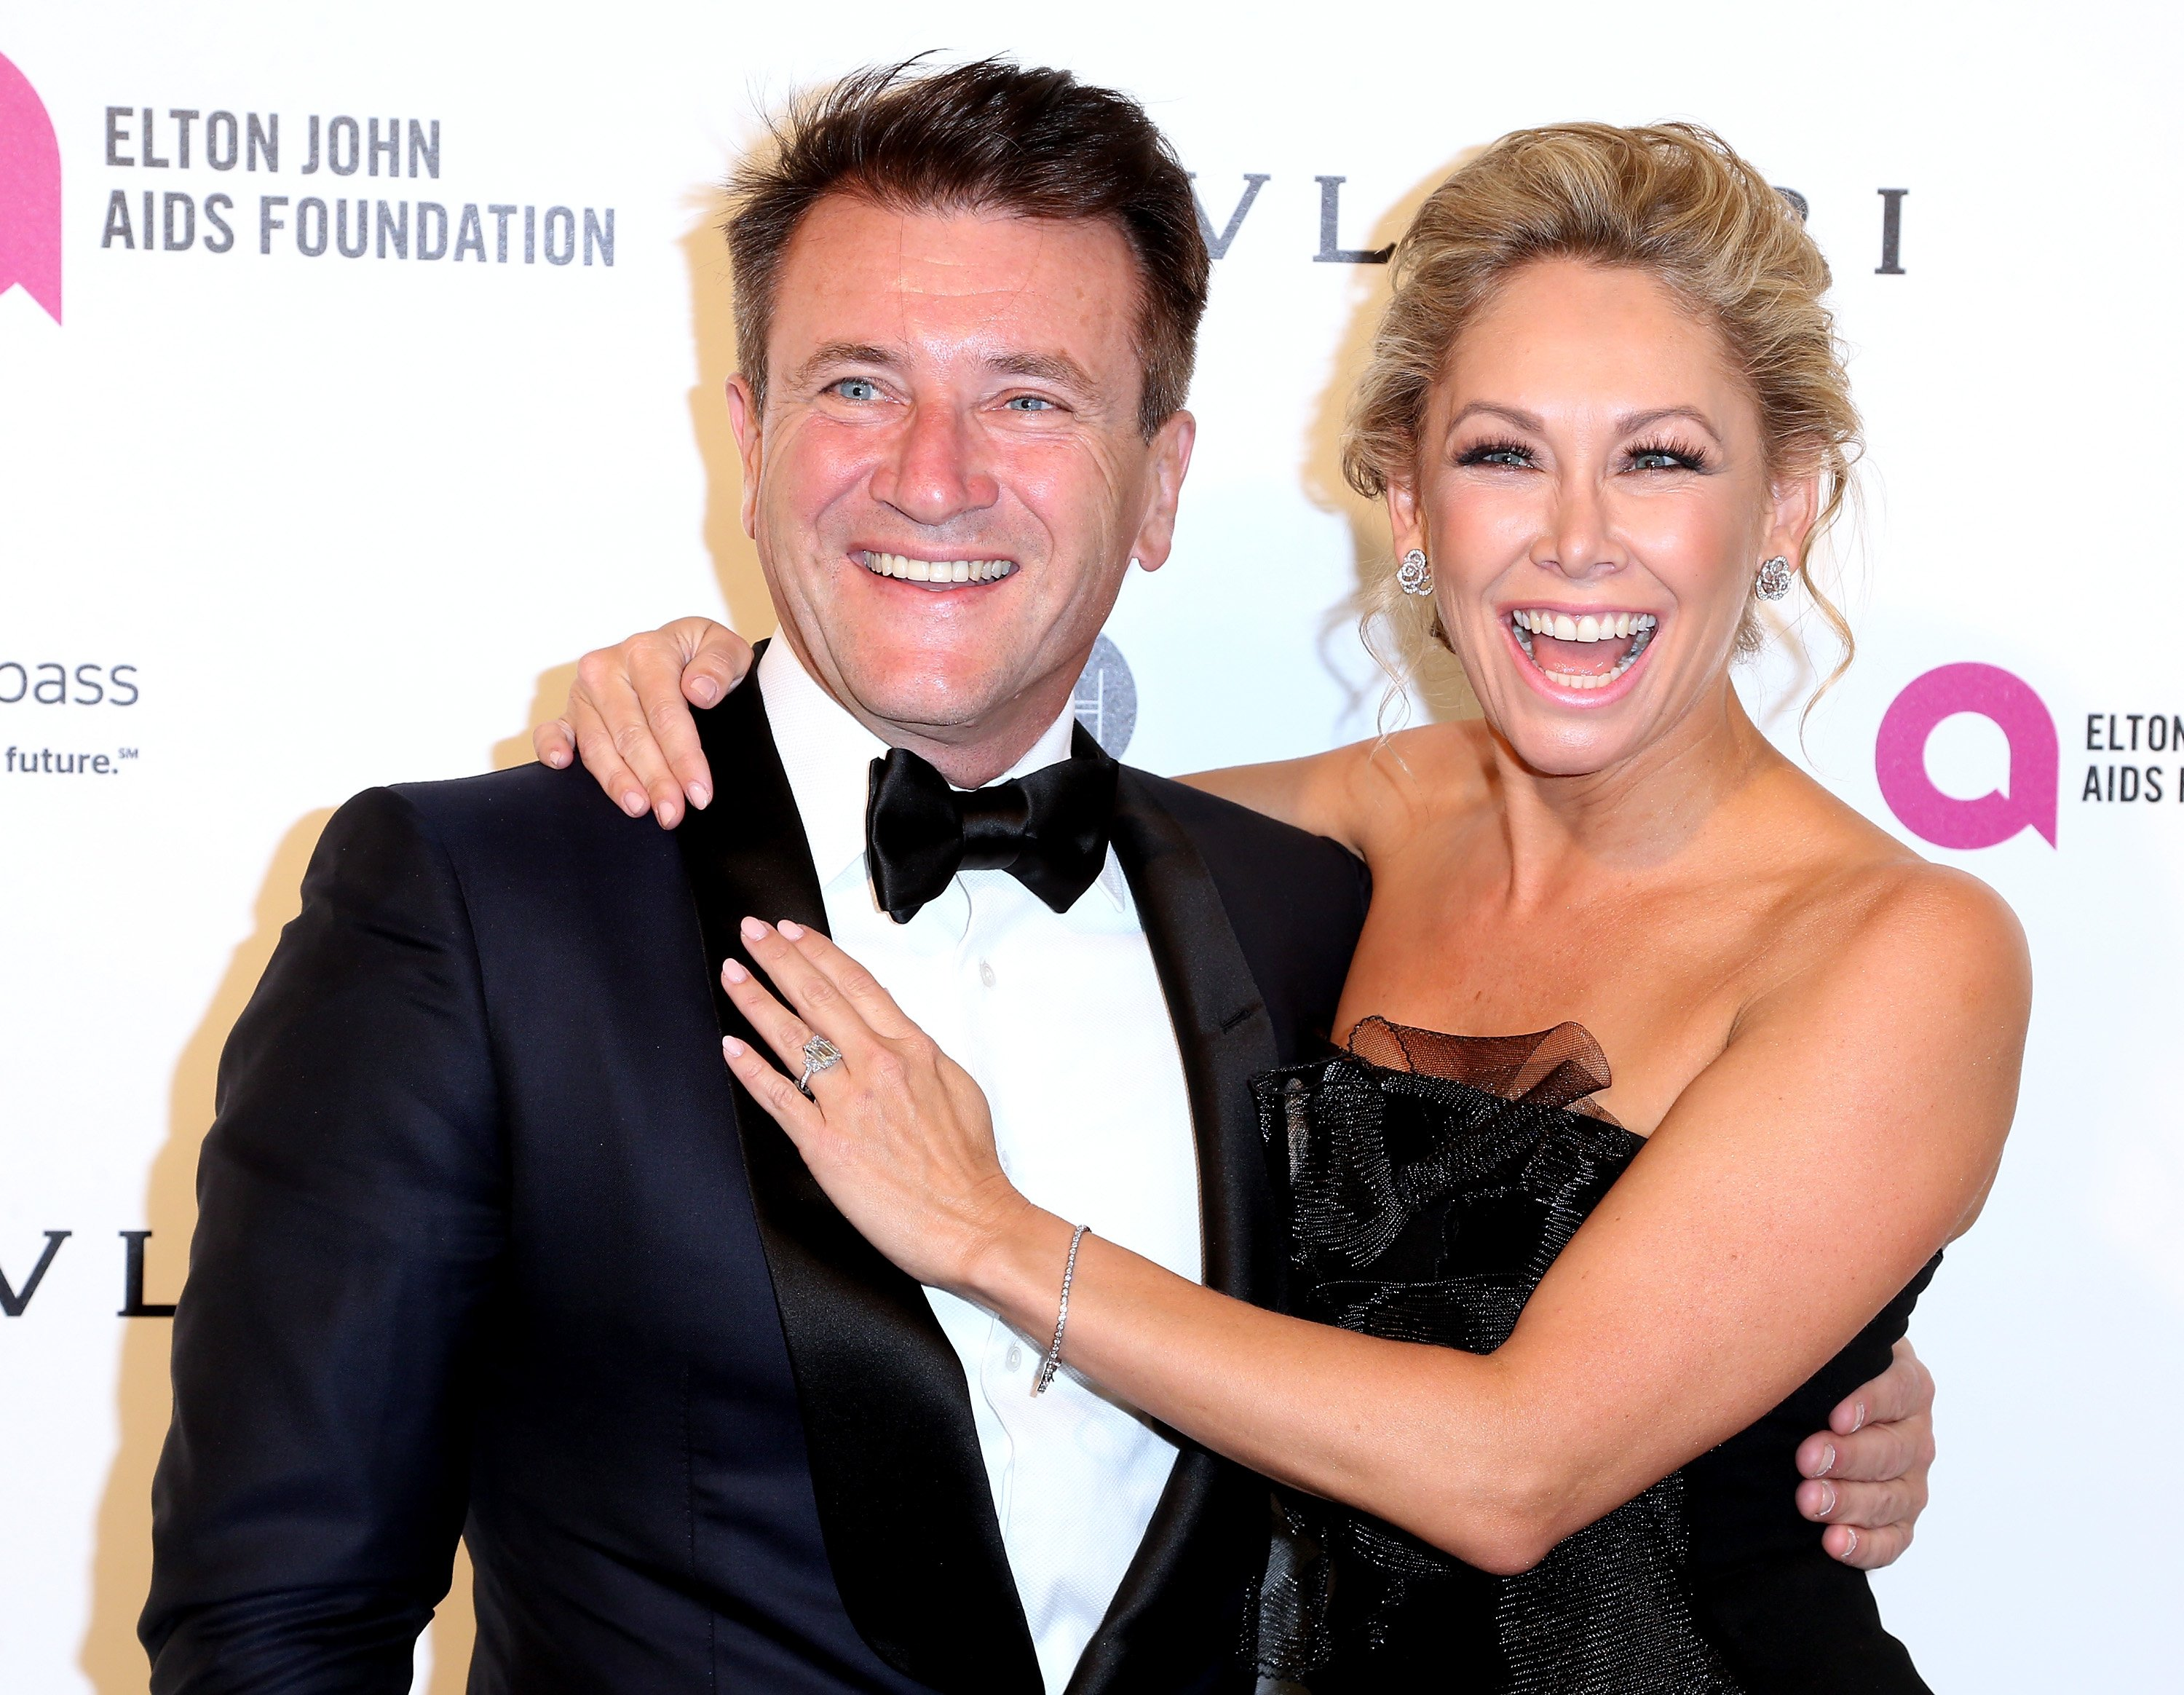 Kym Johnson and Robert Herjavec attend the 24th Annual Elton John AIDS Foundation's Oscar Viewing Party on February 28, 2016, in West Hollywood, California. | Source: Getty Images.